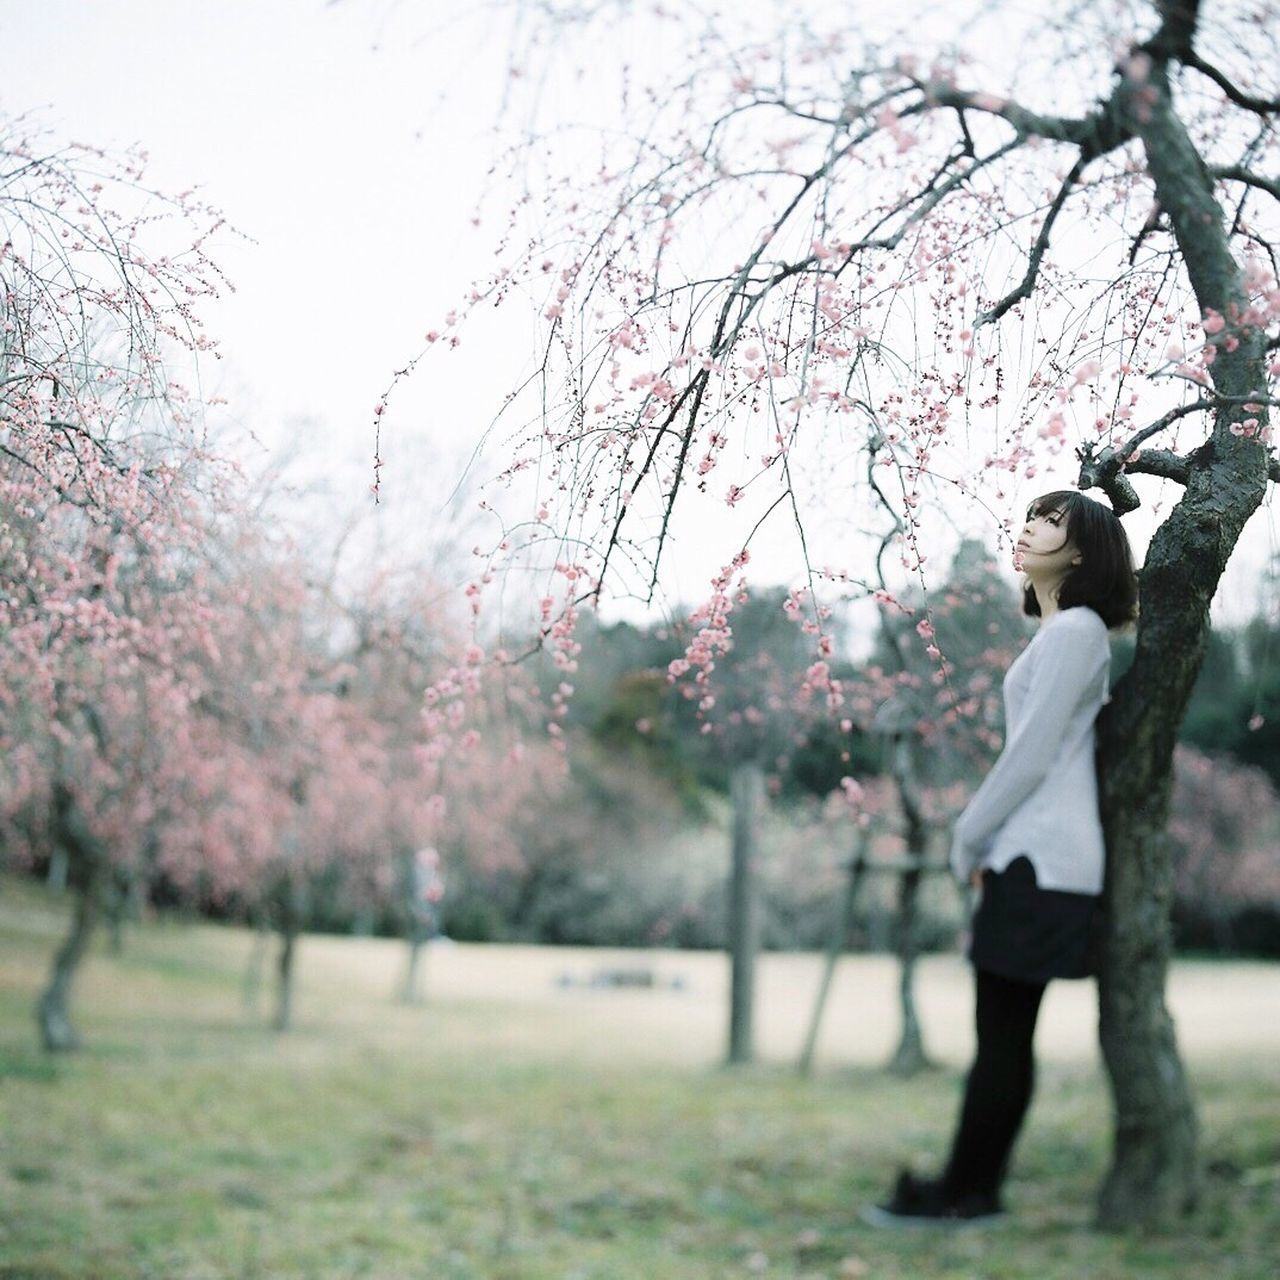 Tree One Person Flower Full Length Nature Pink Color Outdoors Cherry Blossom Branch Day Sky Beauty In Nature People Young Adult